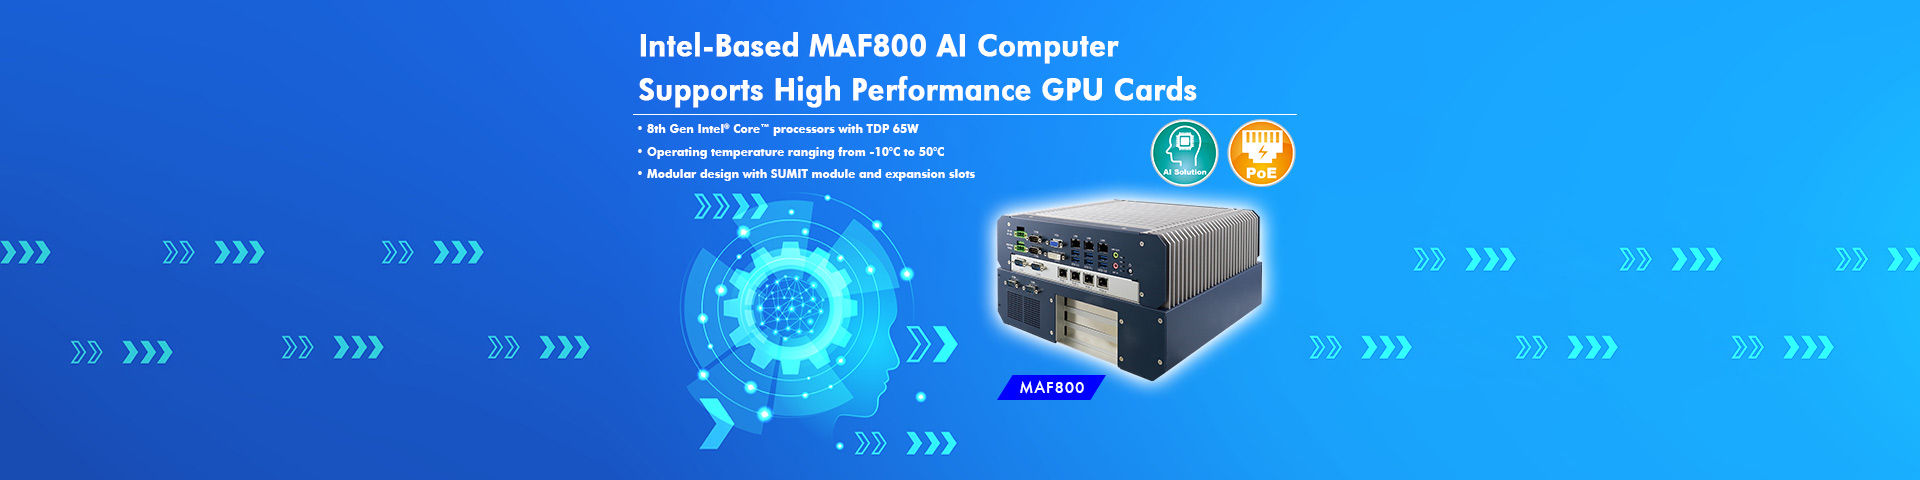 Intel-Based MAF800 AI Computer  Supports High Performance GPU Cards